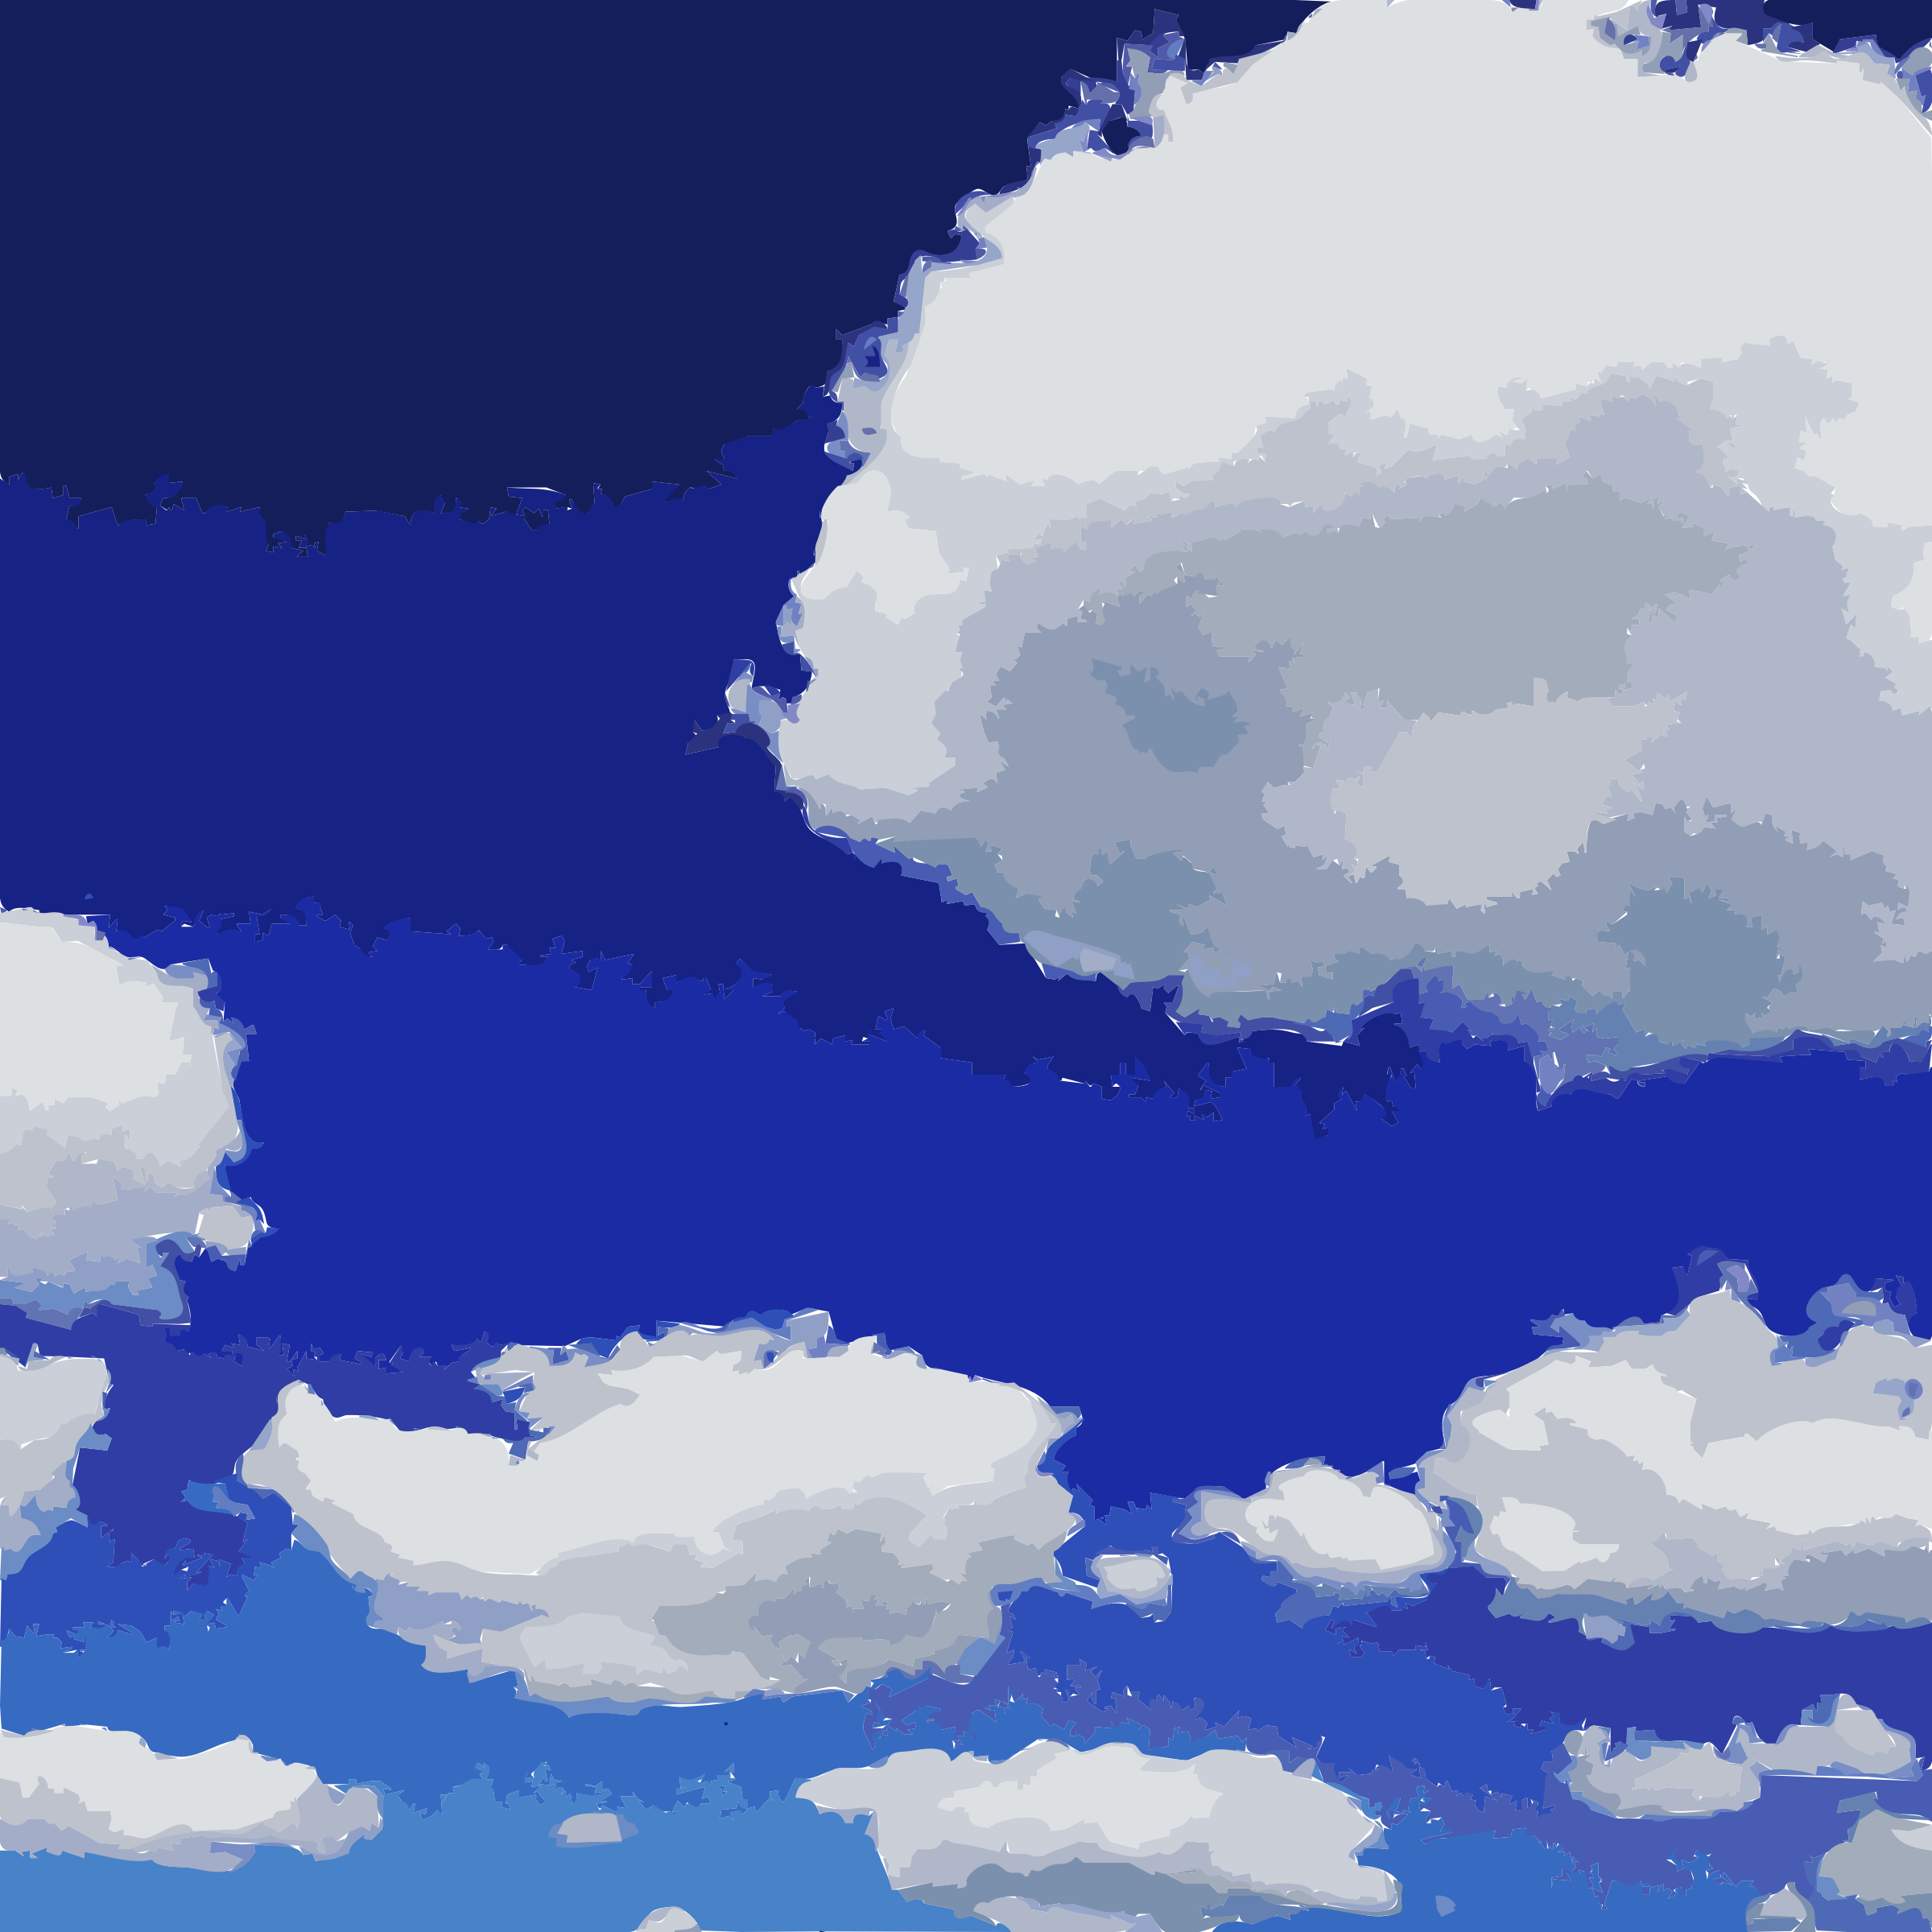 Clouds DS 54 by keriann3